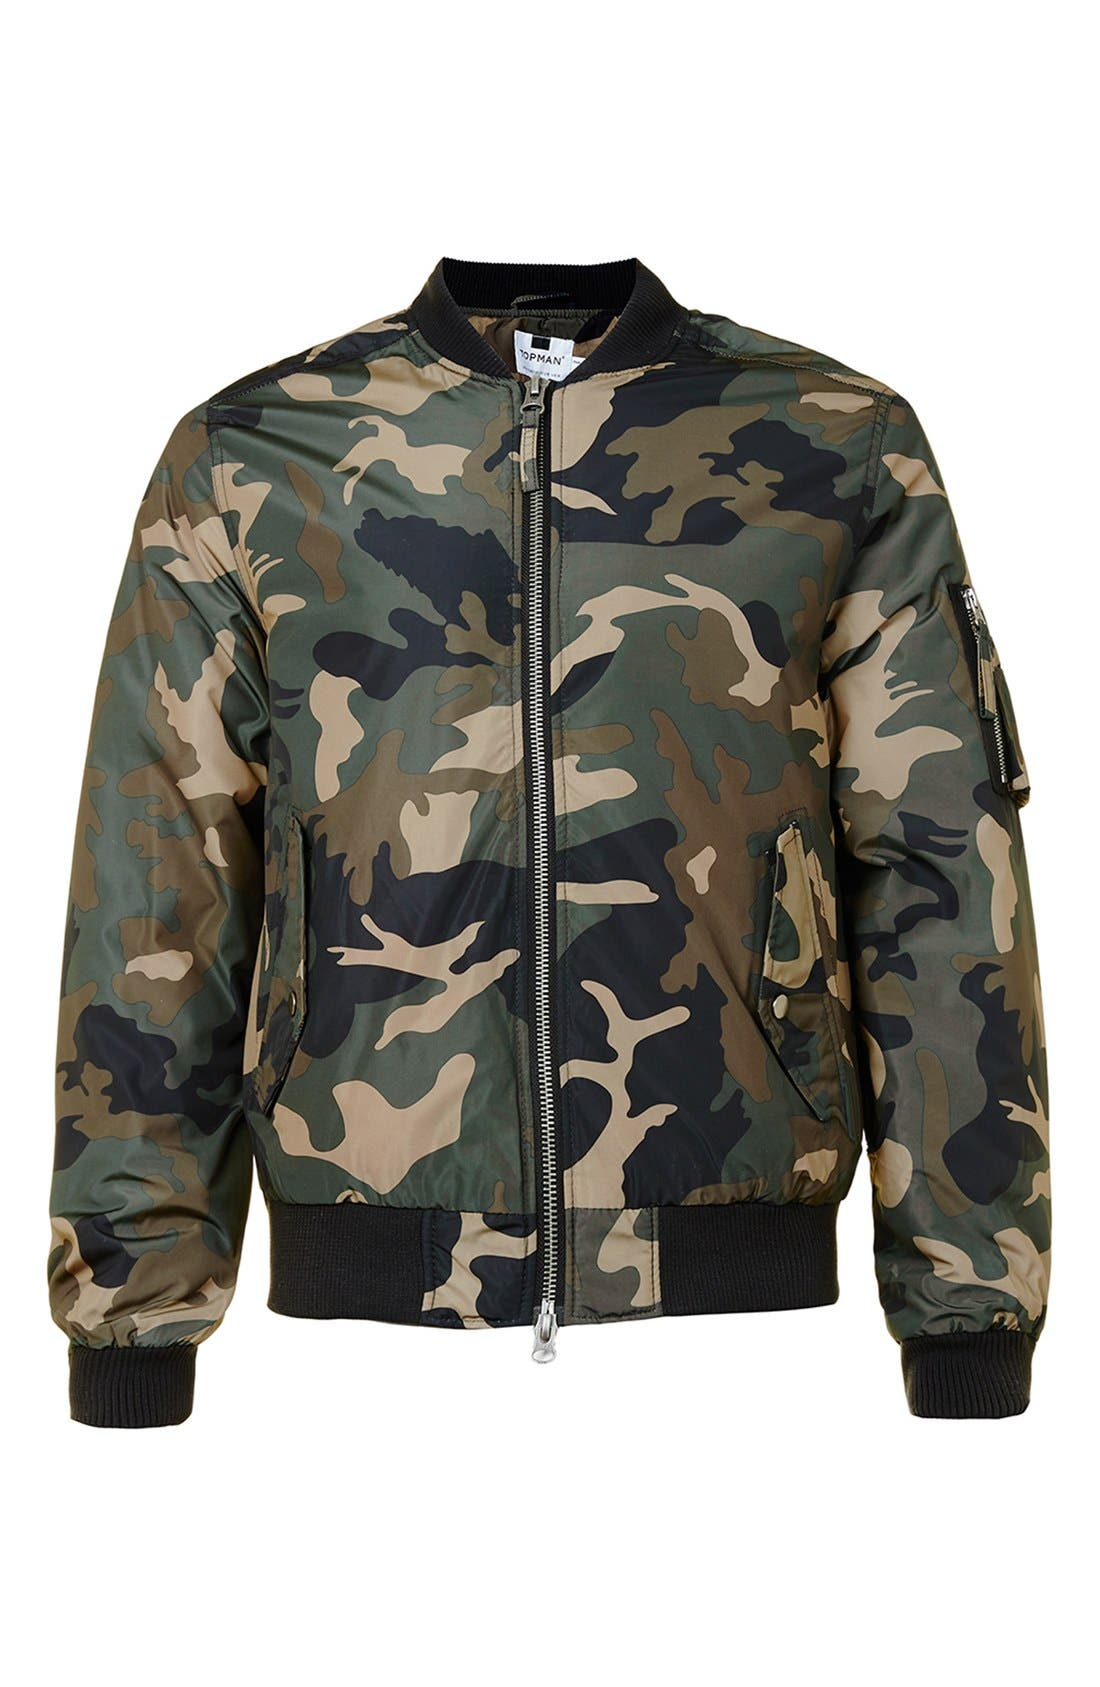 Camo Print MA-1 Bomber Jacket,                             Alternate thumbnail 4, color,                             300